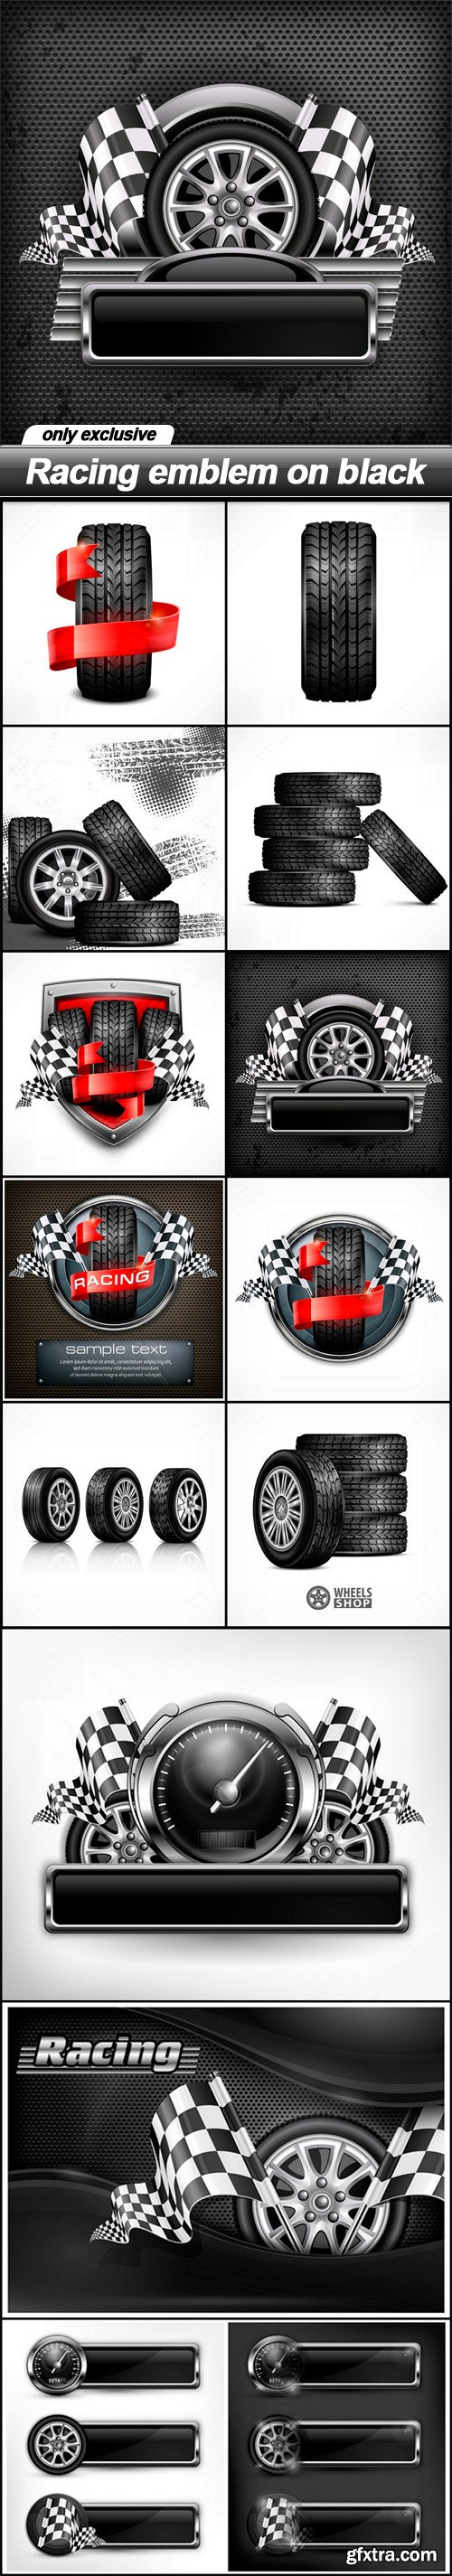 Racing emblem on black - 13 EPS